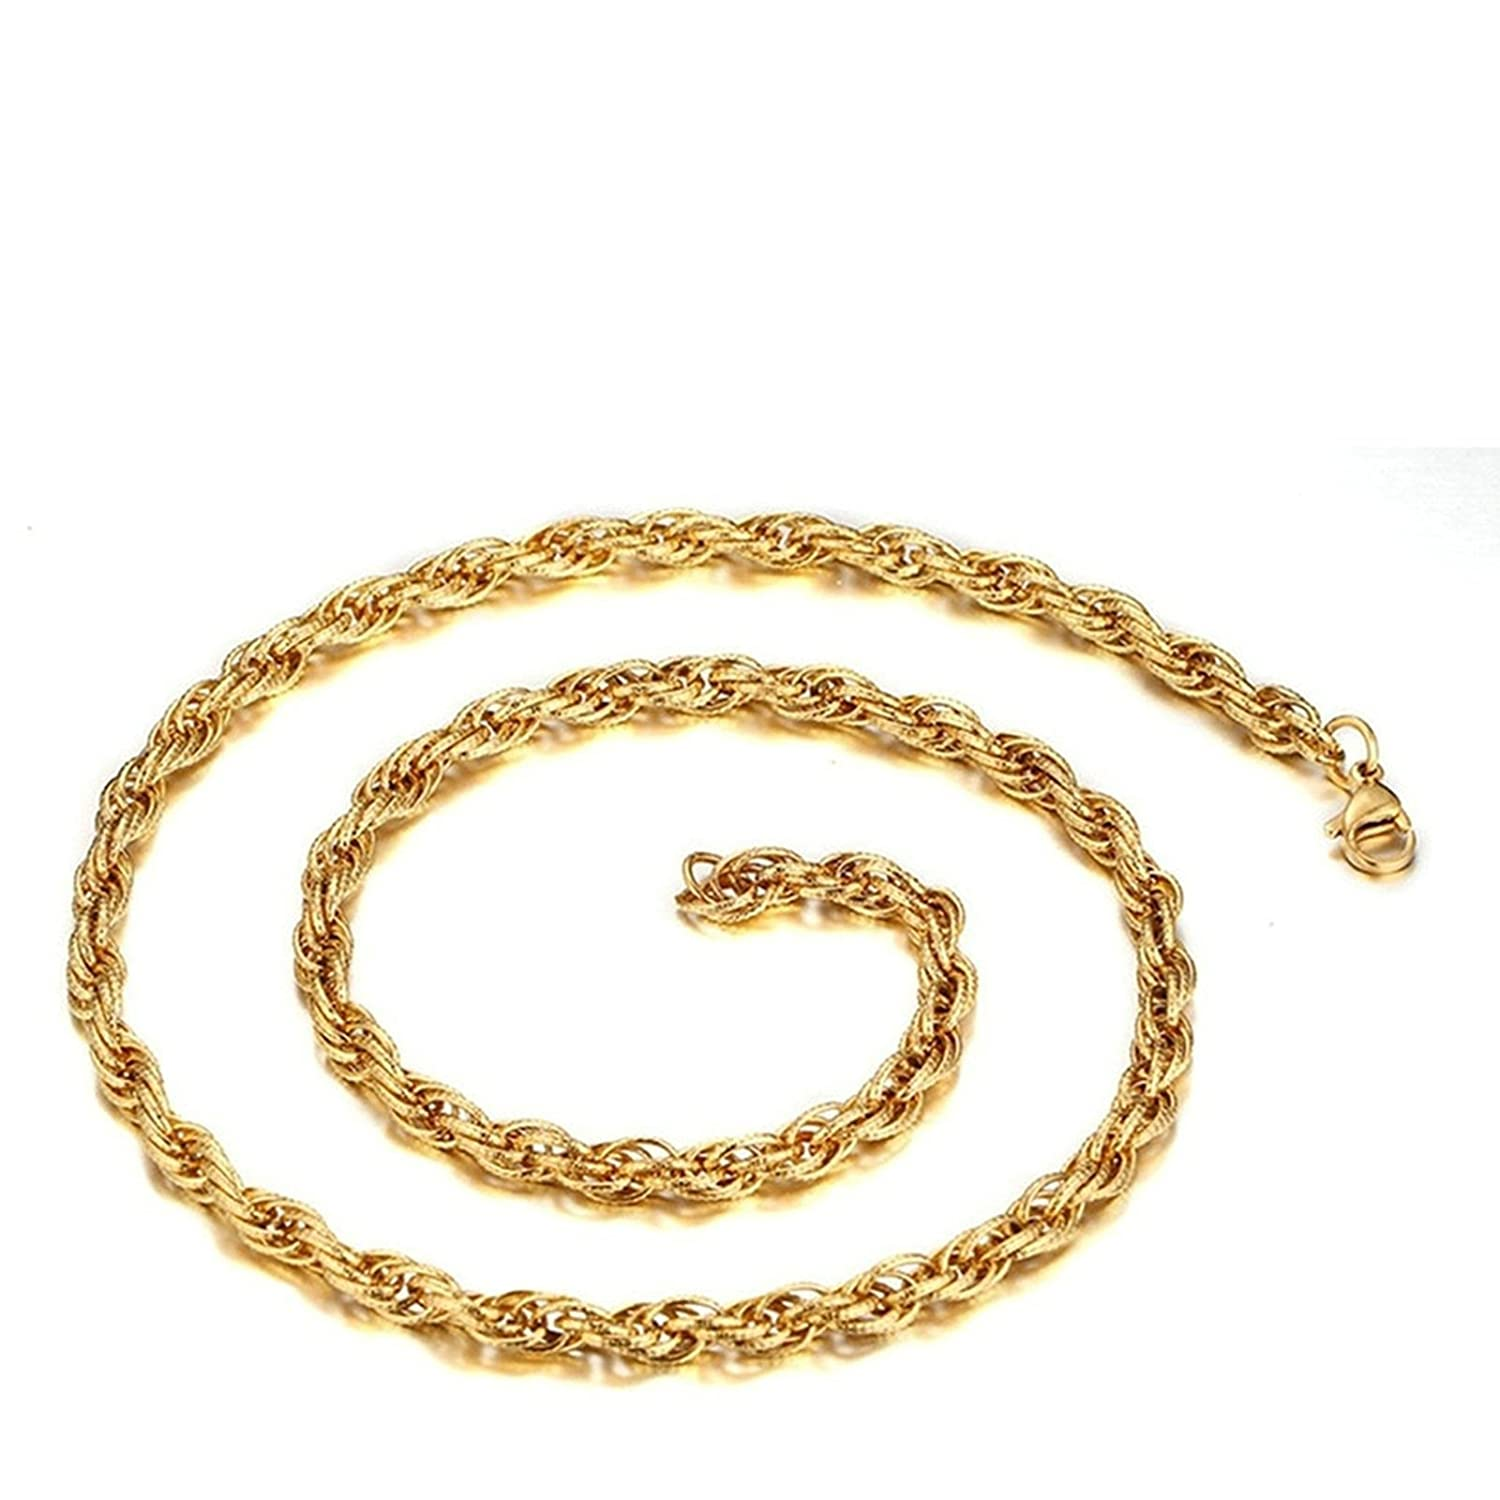 mens womens Stainless Steel Chain Necklace Wheat Link Gold Unisex Wedding Novelty Necklace Jewelry Aooaz Jewelry